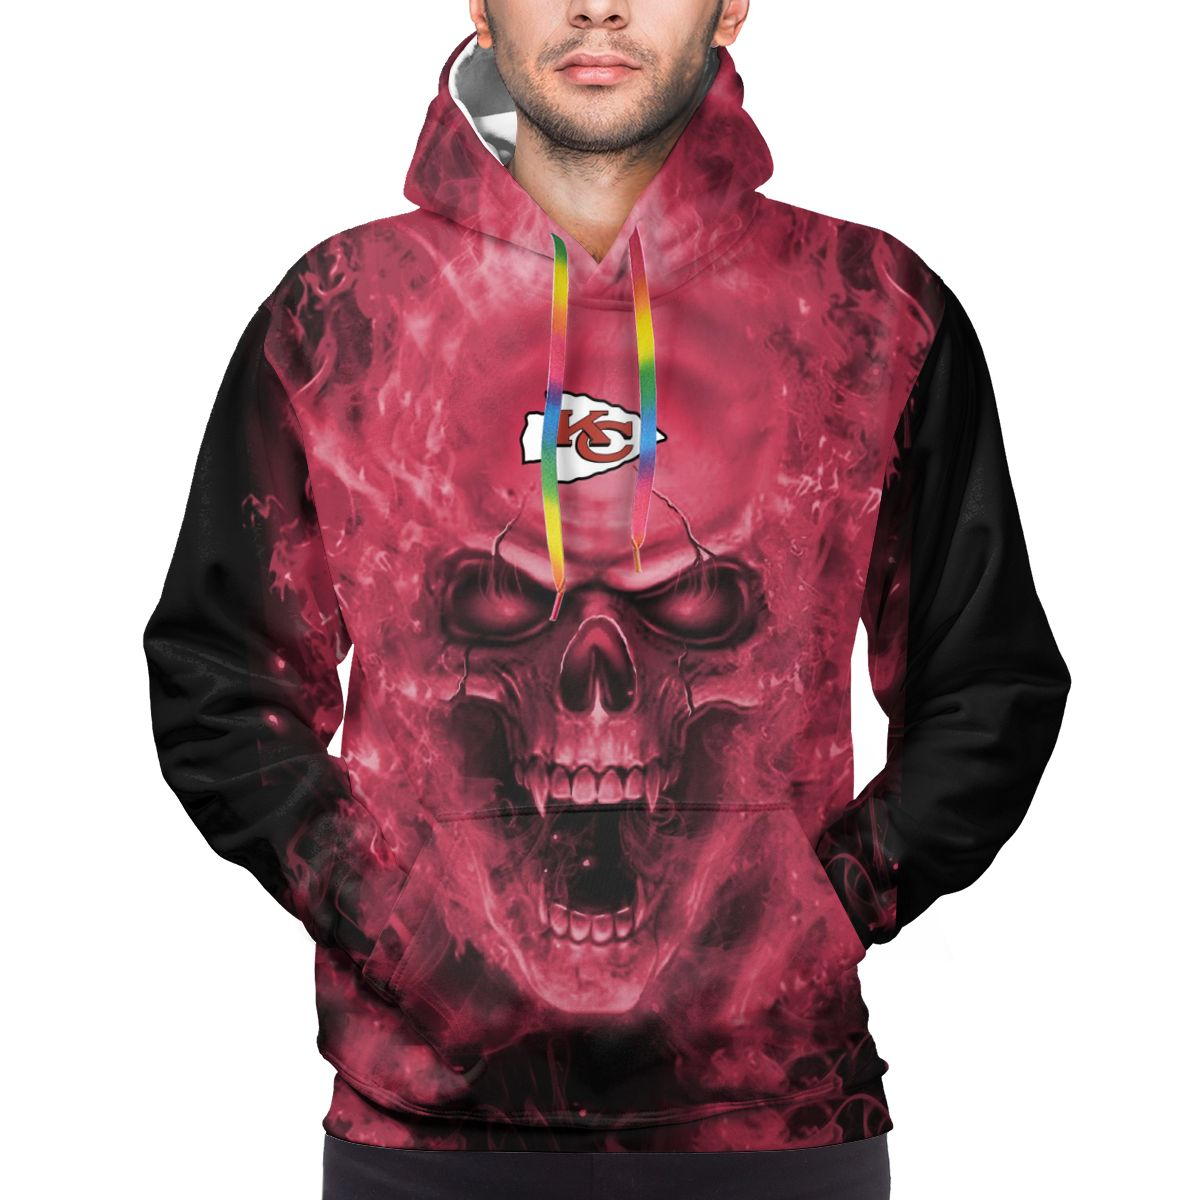 3D Skull Chiefs Logo Print Hoodies For Men Pullover Sweatshirt